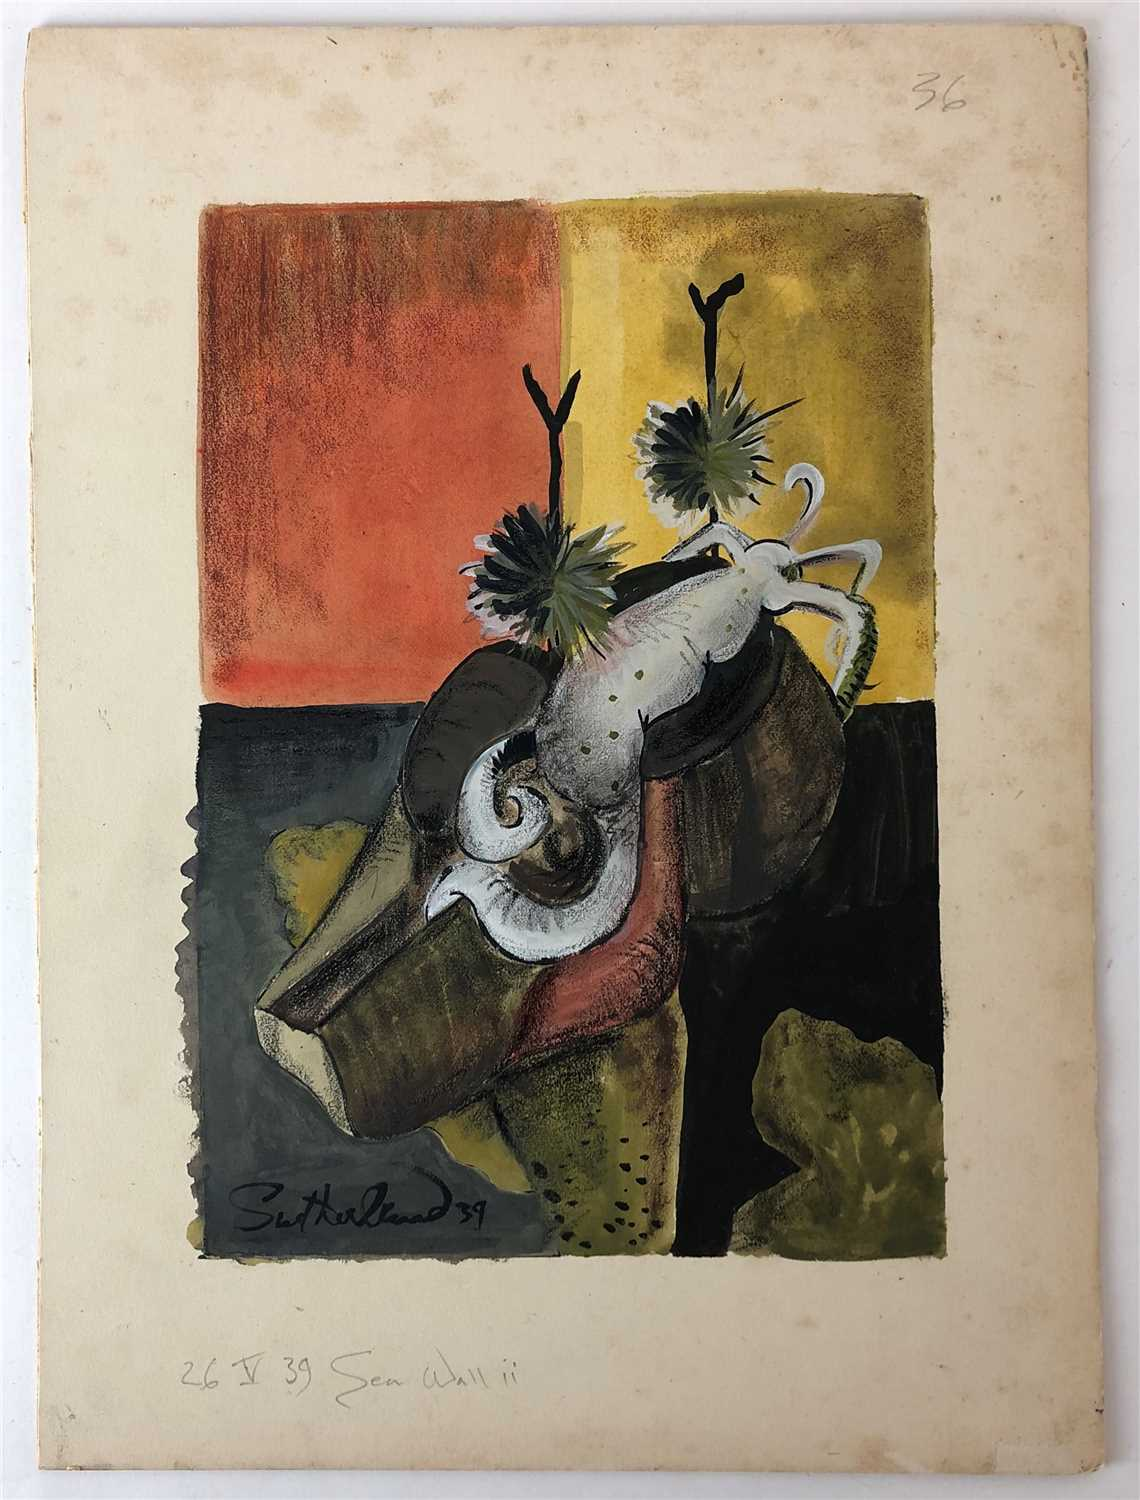 Graham Sutherland's 'Sea Wall II'